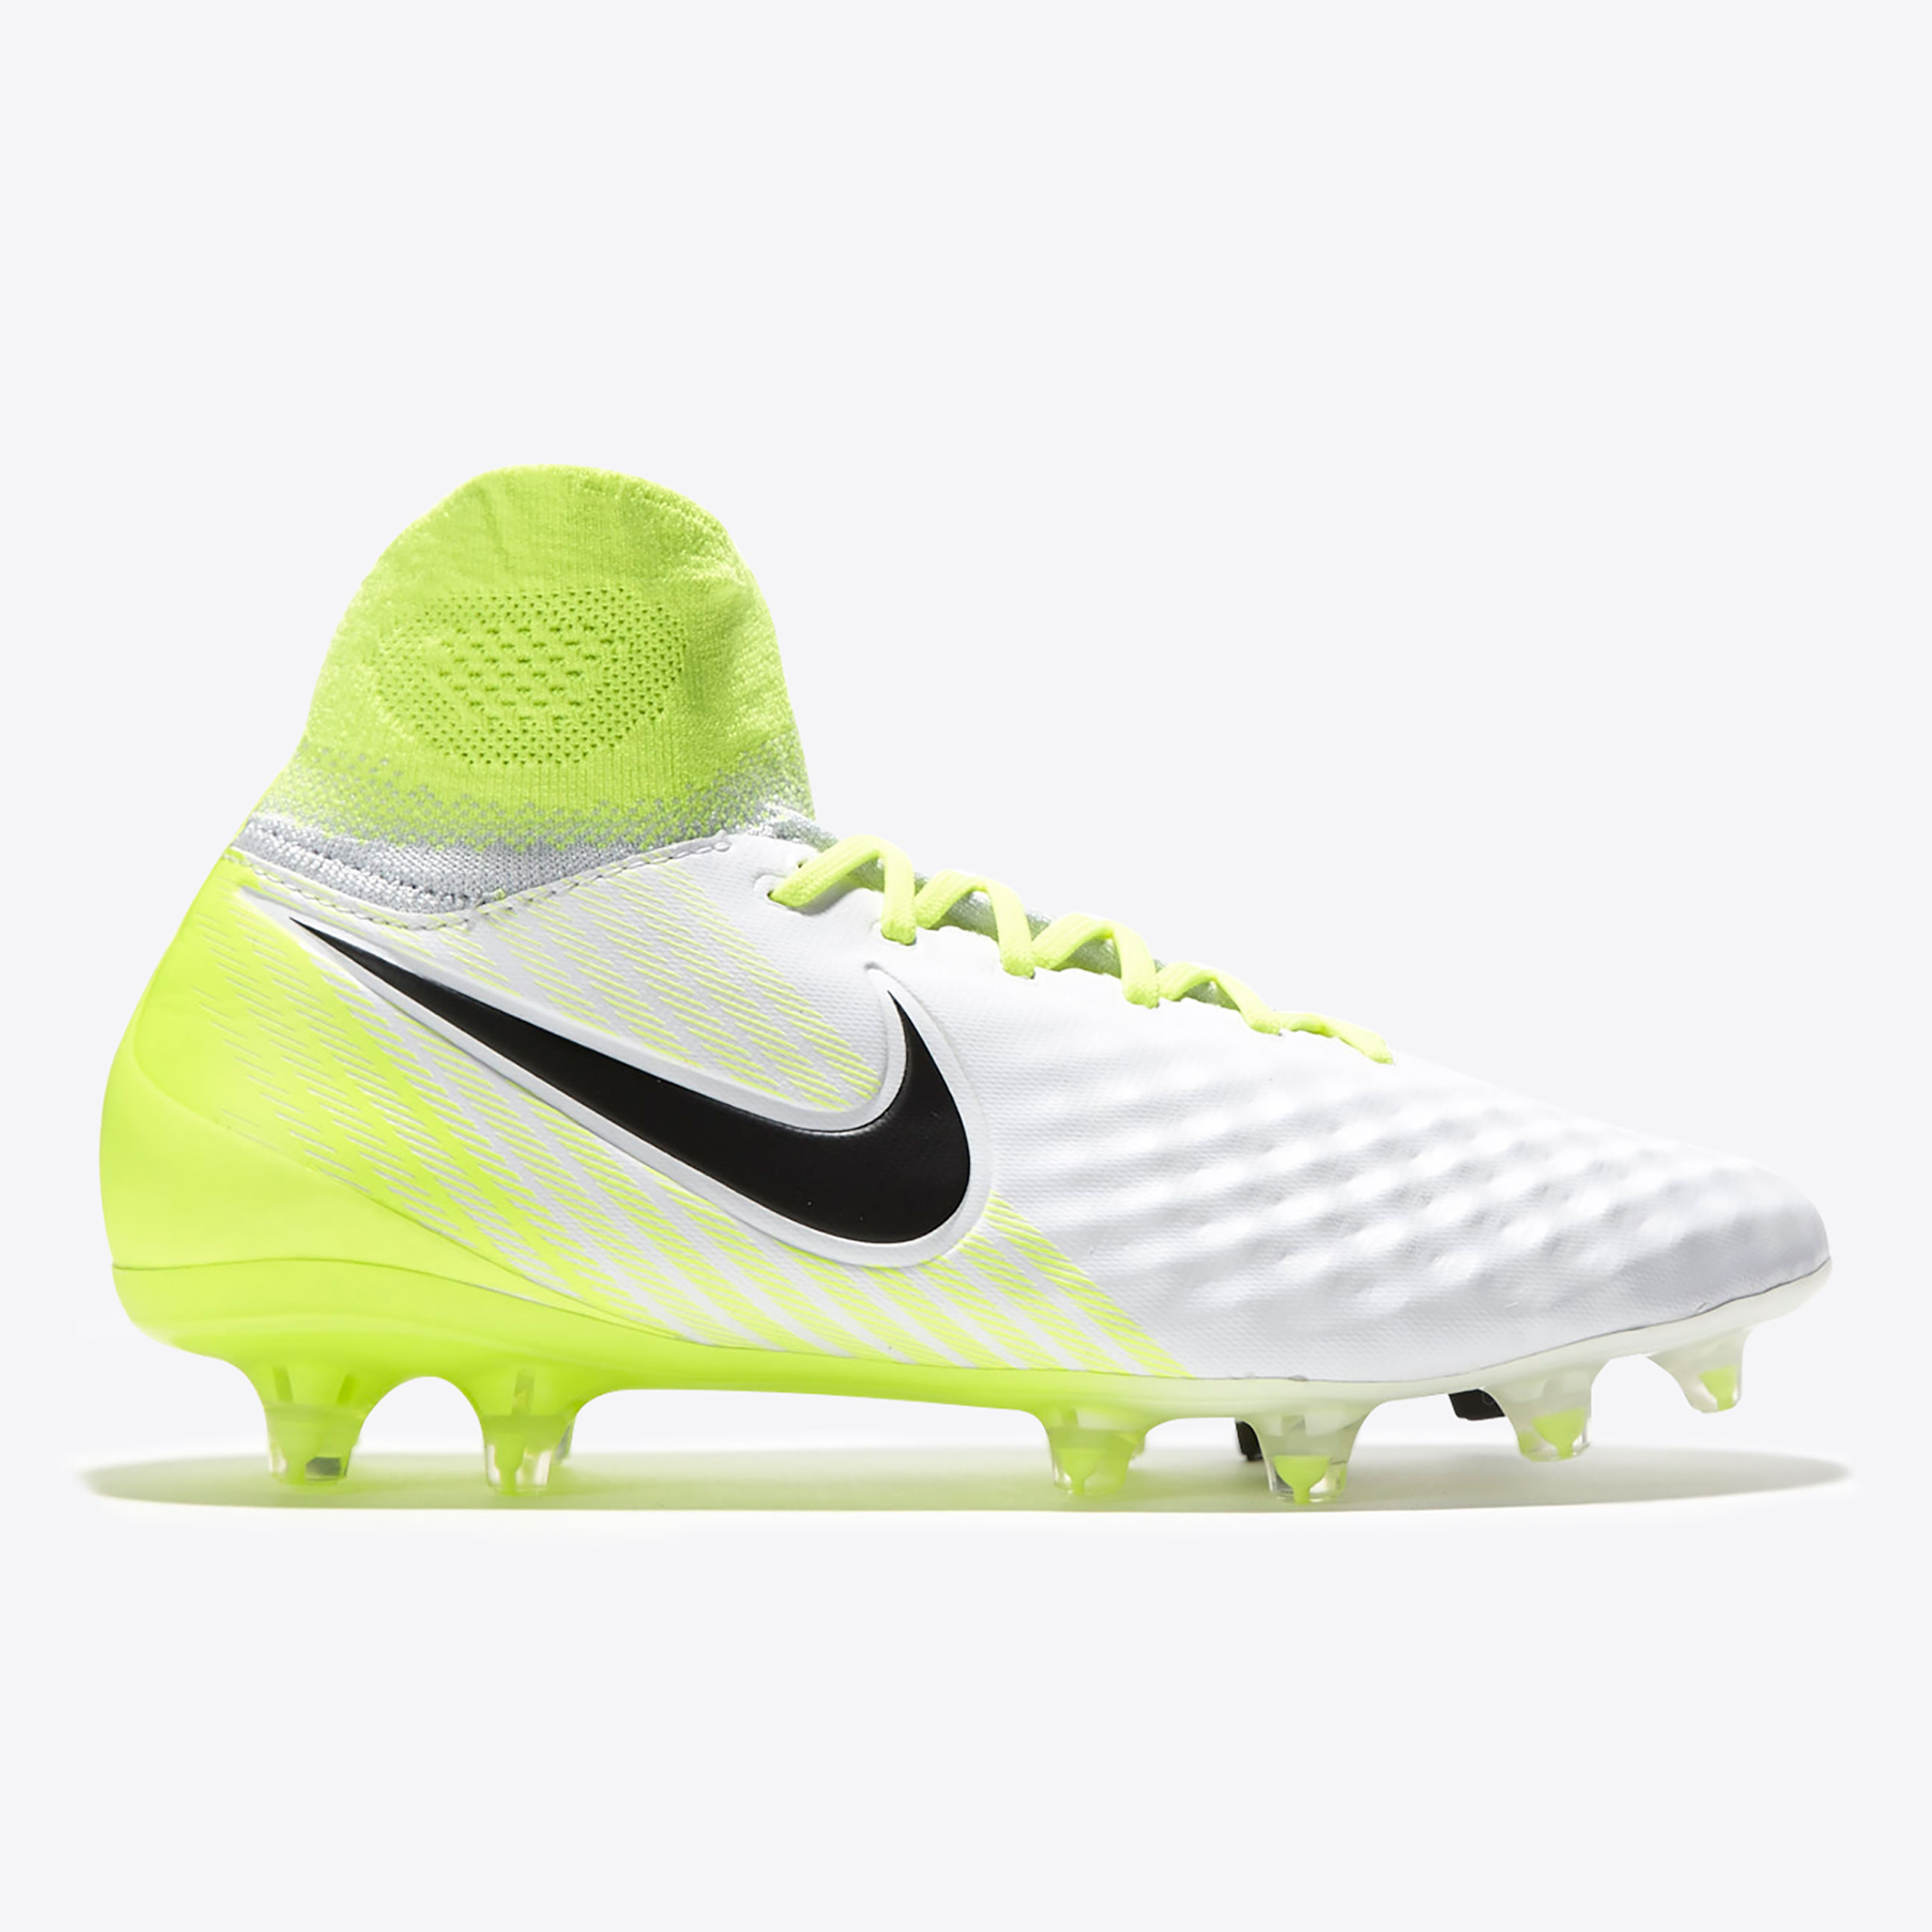 Nike Magista Obra II Firm Ground Football Boots - White/Black/Volt/Pur